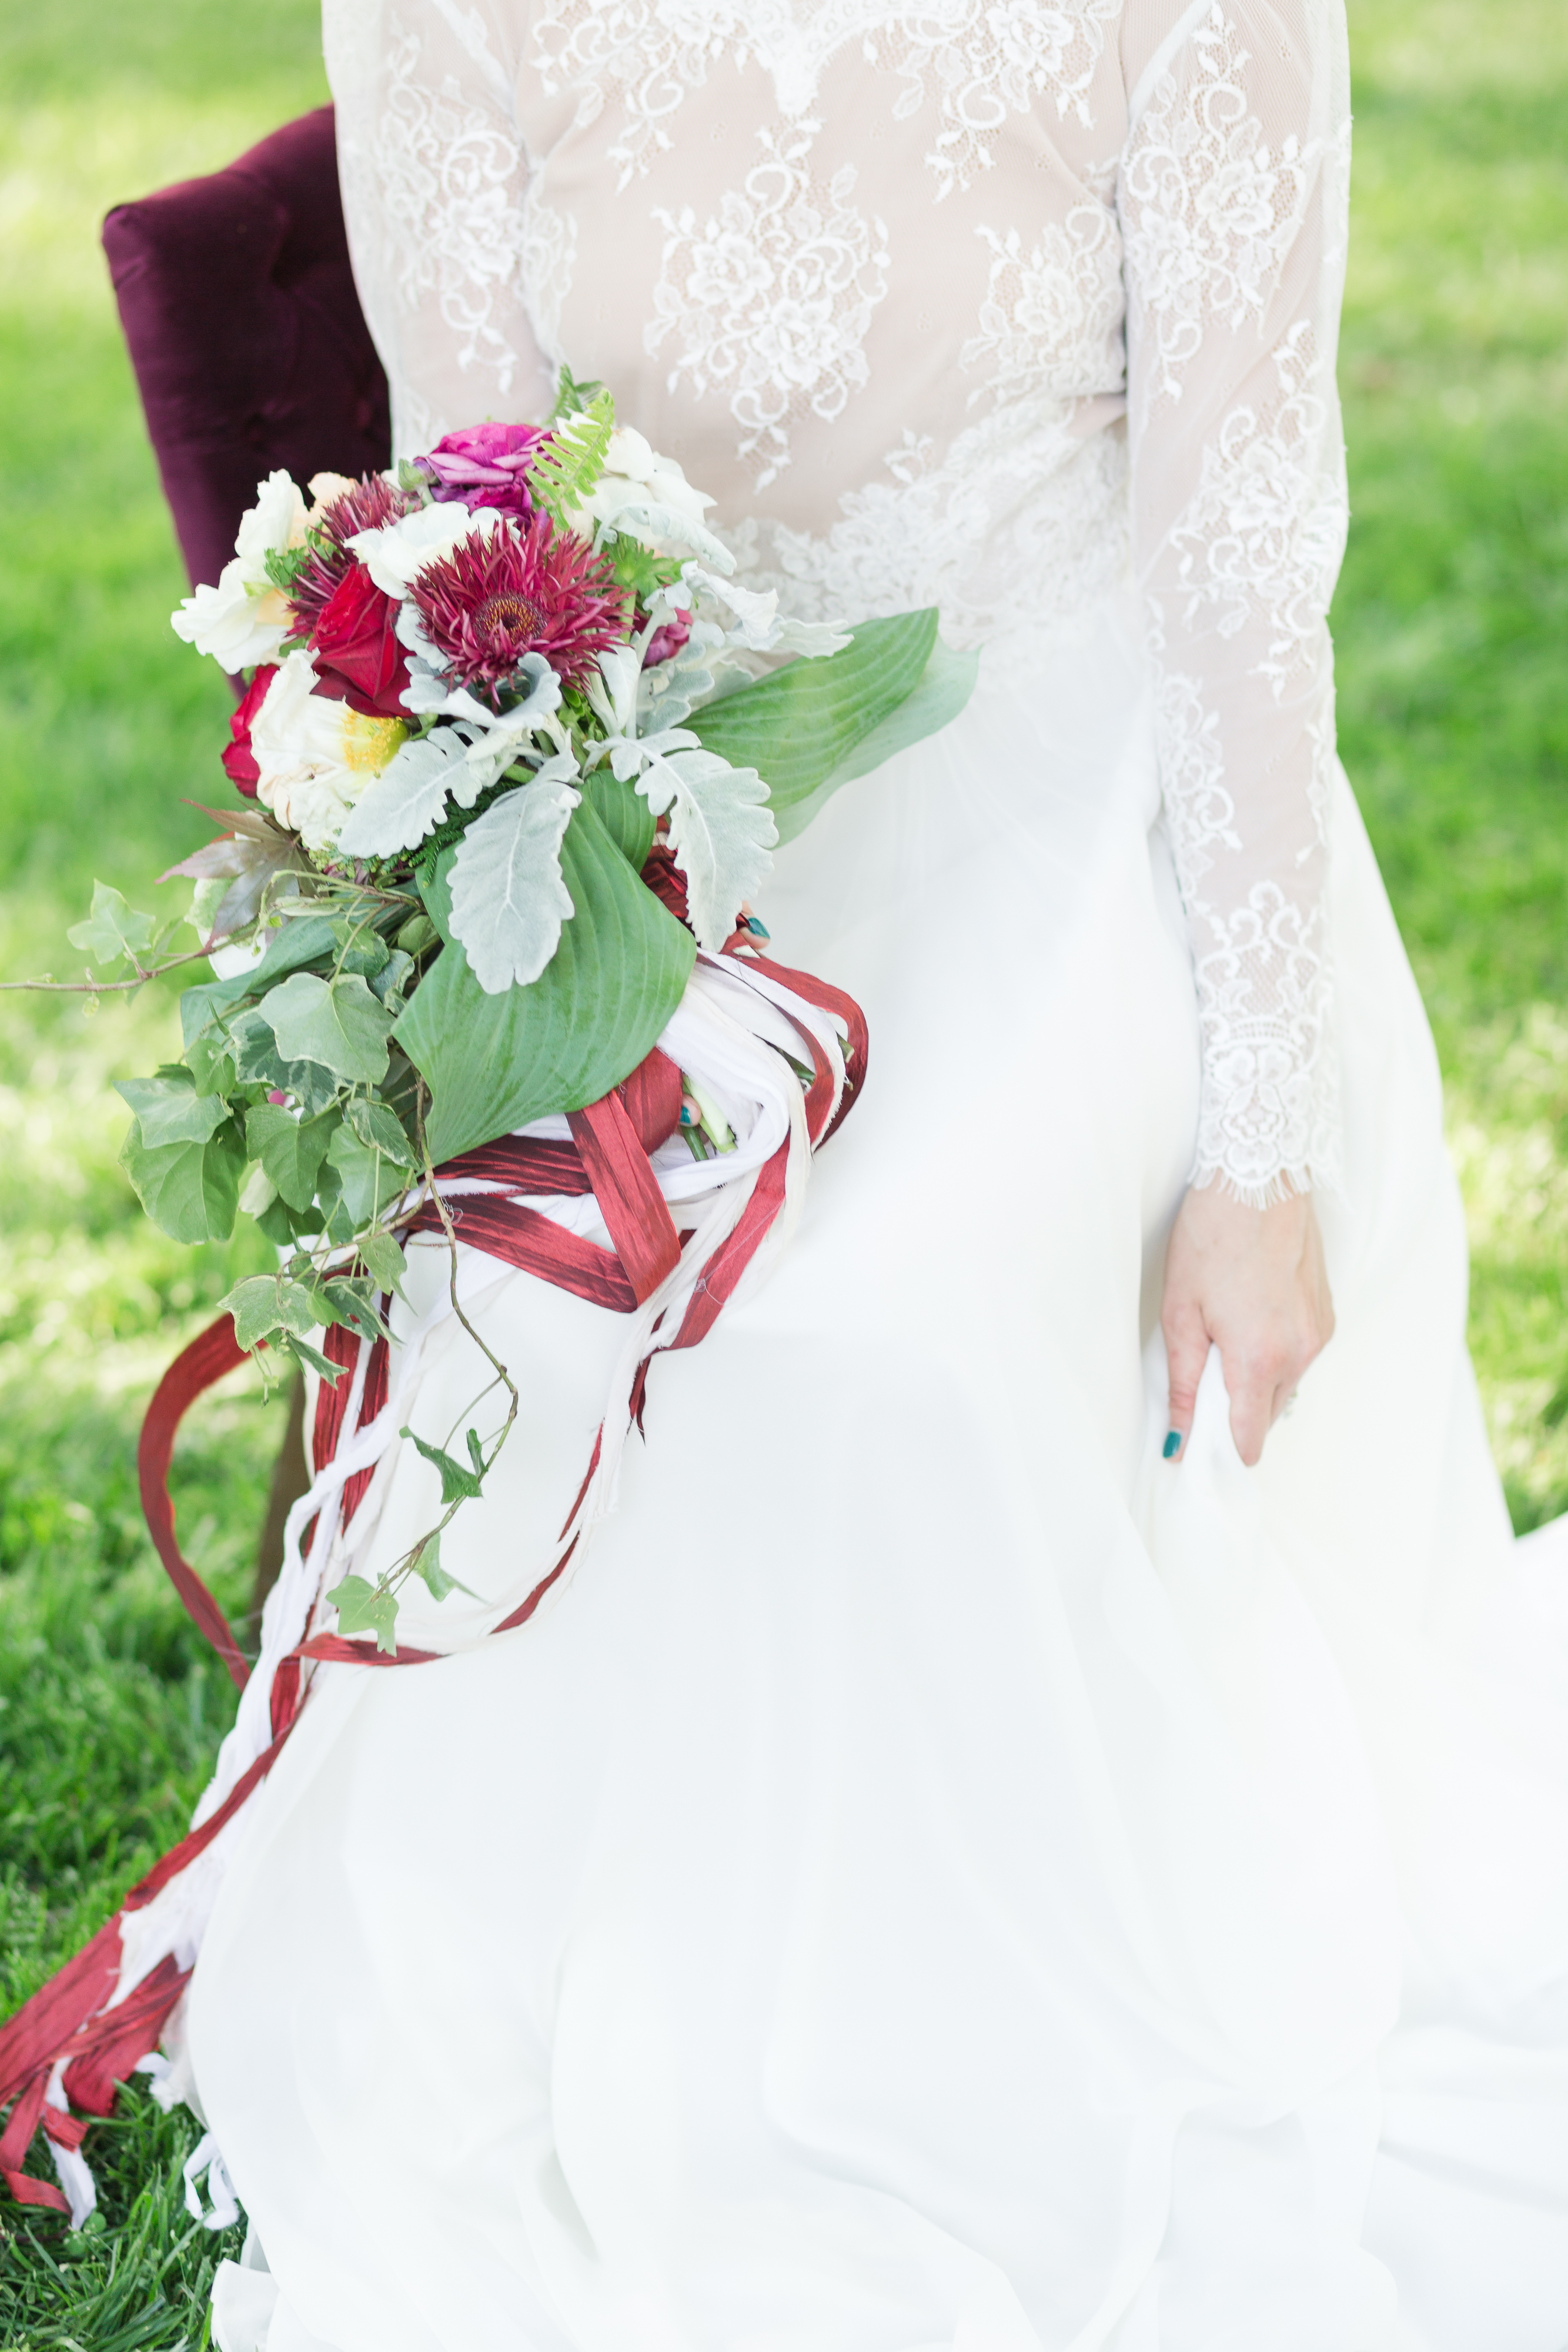 Raleigh wedding planner, Services, Jamie Blow Photography, Downtown Raleigh Wedding, bride with burgundy and blush bouquet